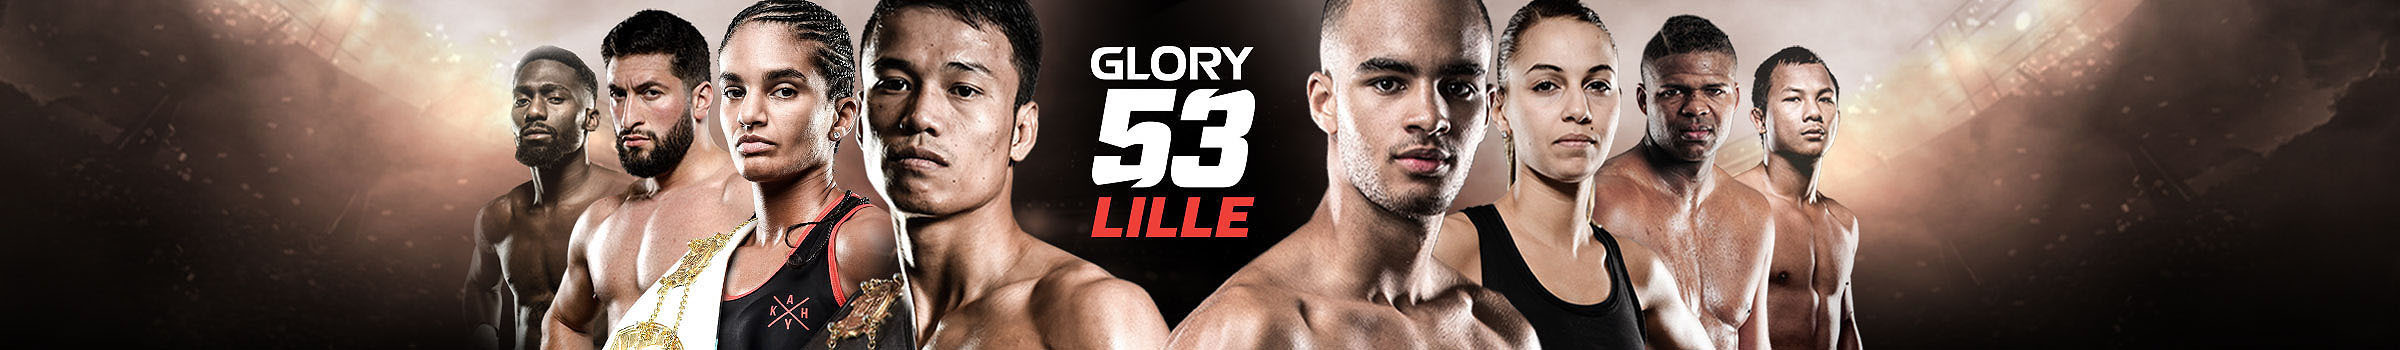 GLORY 53 Lille